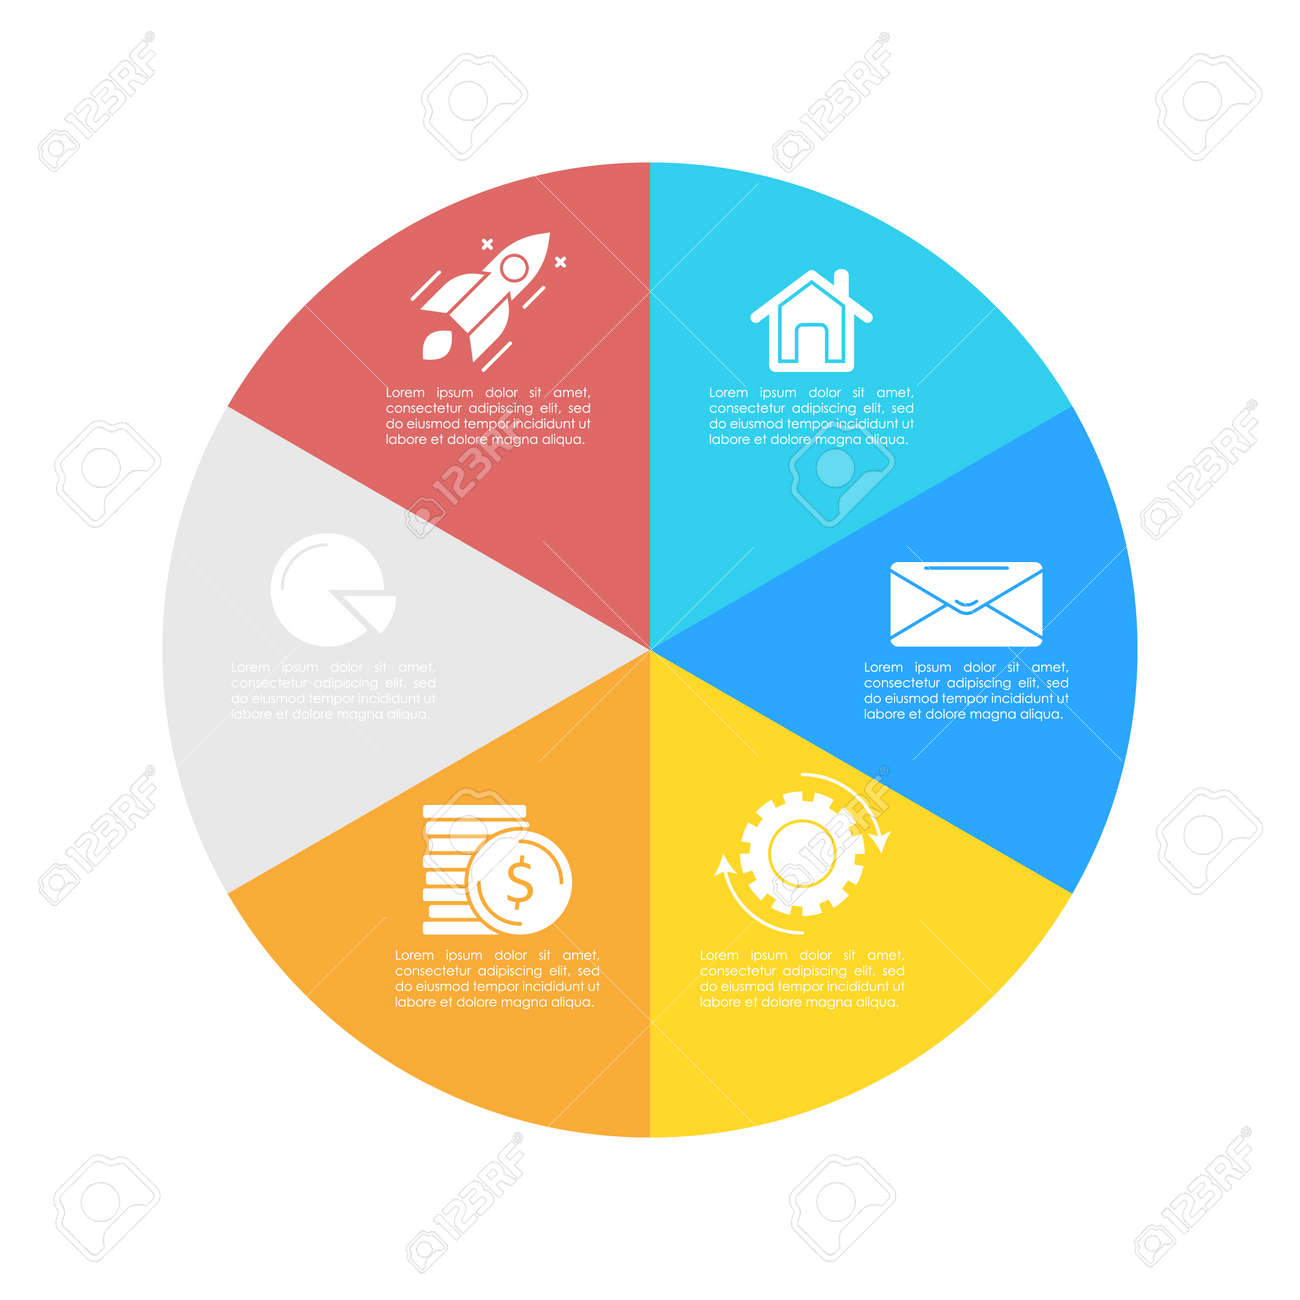 Round infographic template with 6 steps for presentation or chart. Business concept circle diagram. Vector illustration. - 133091548